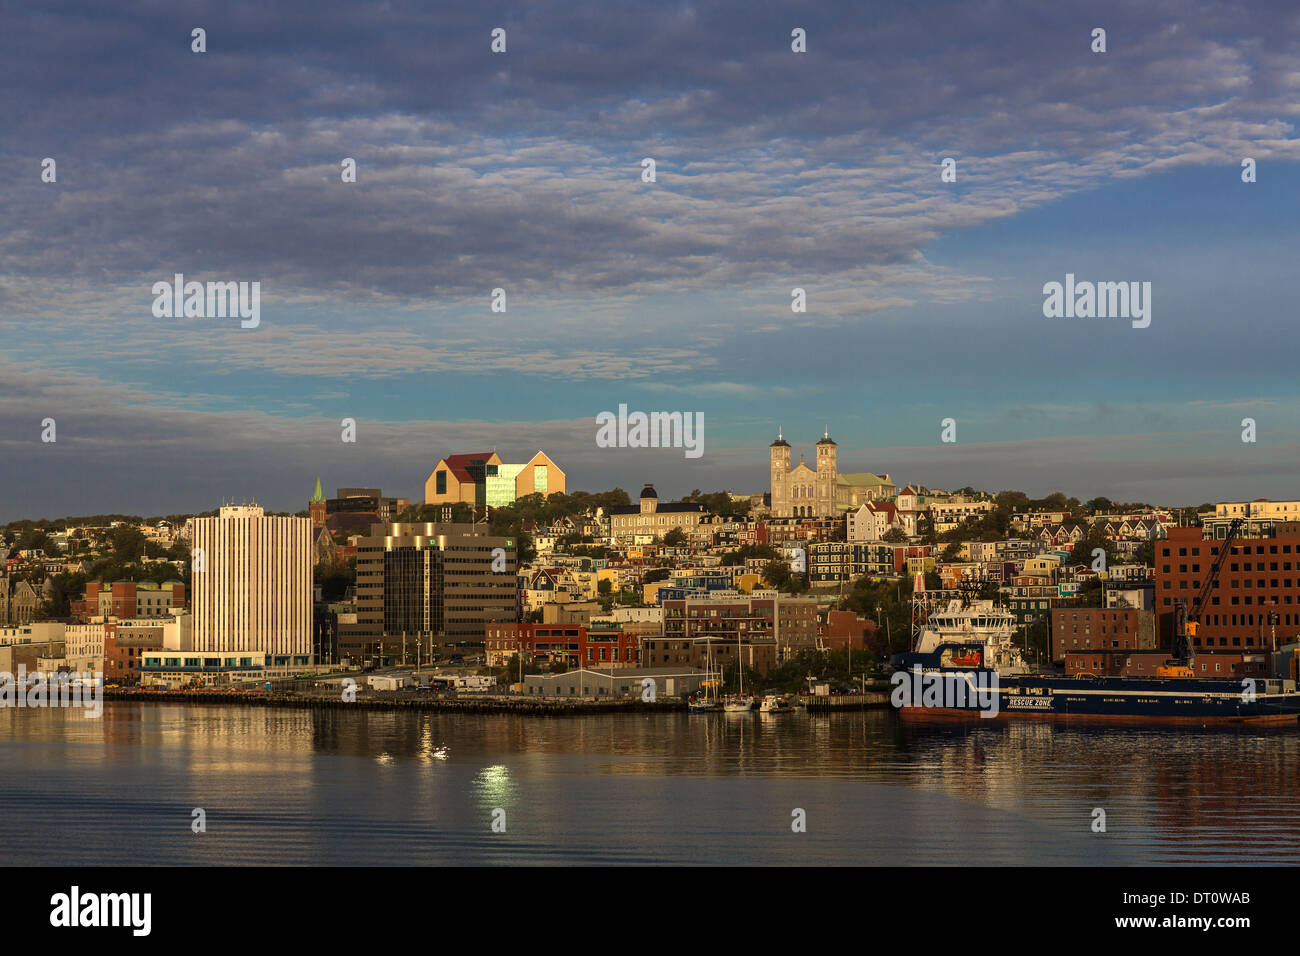 Waterfront view of St John's Newfoundland Canada Stock Photo